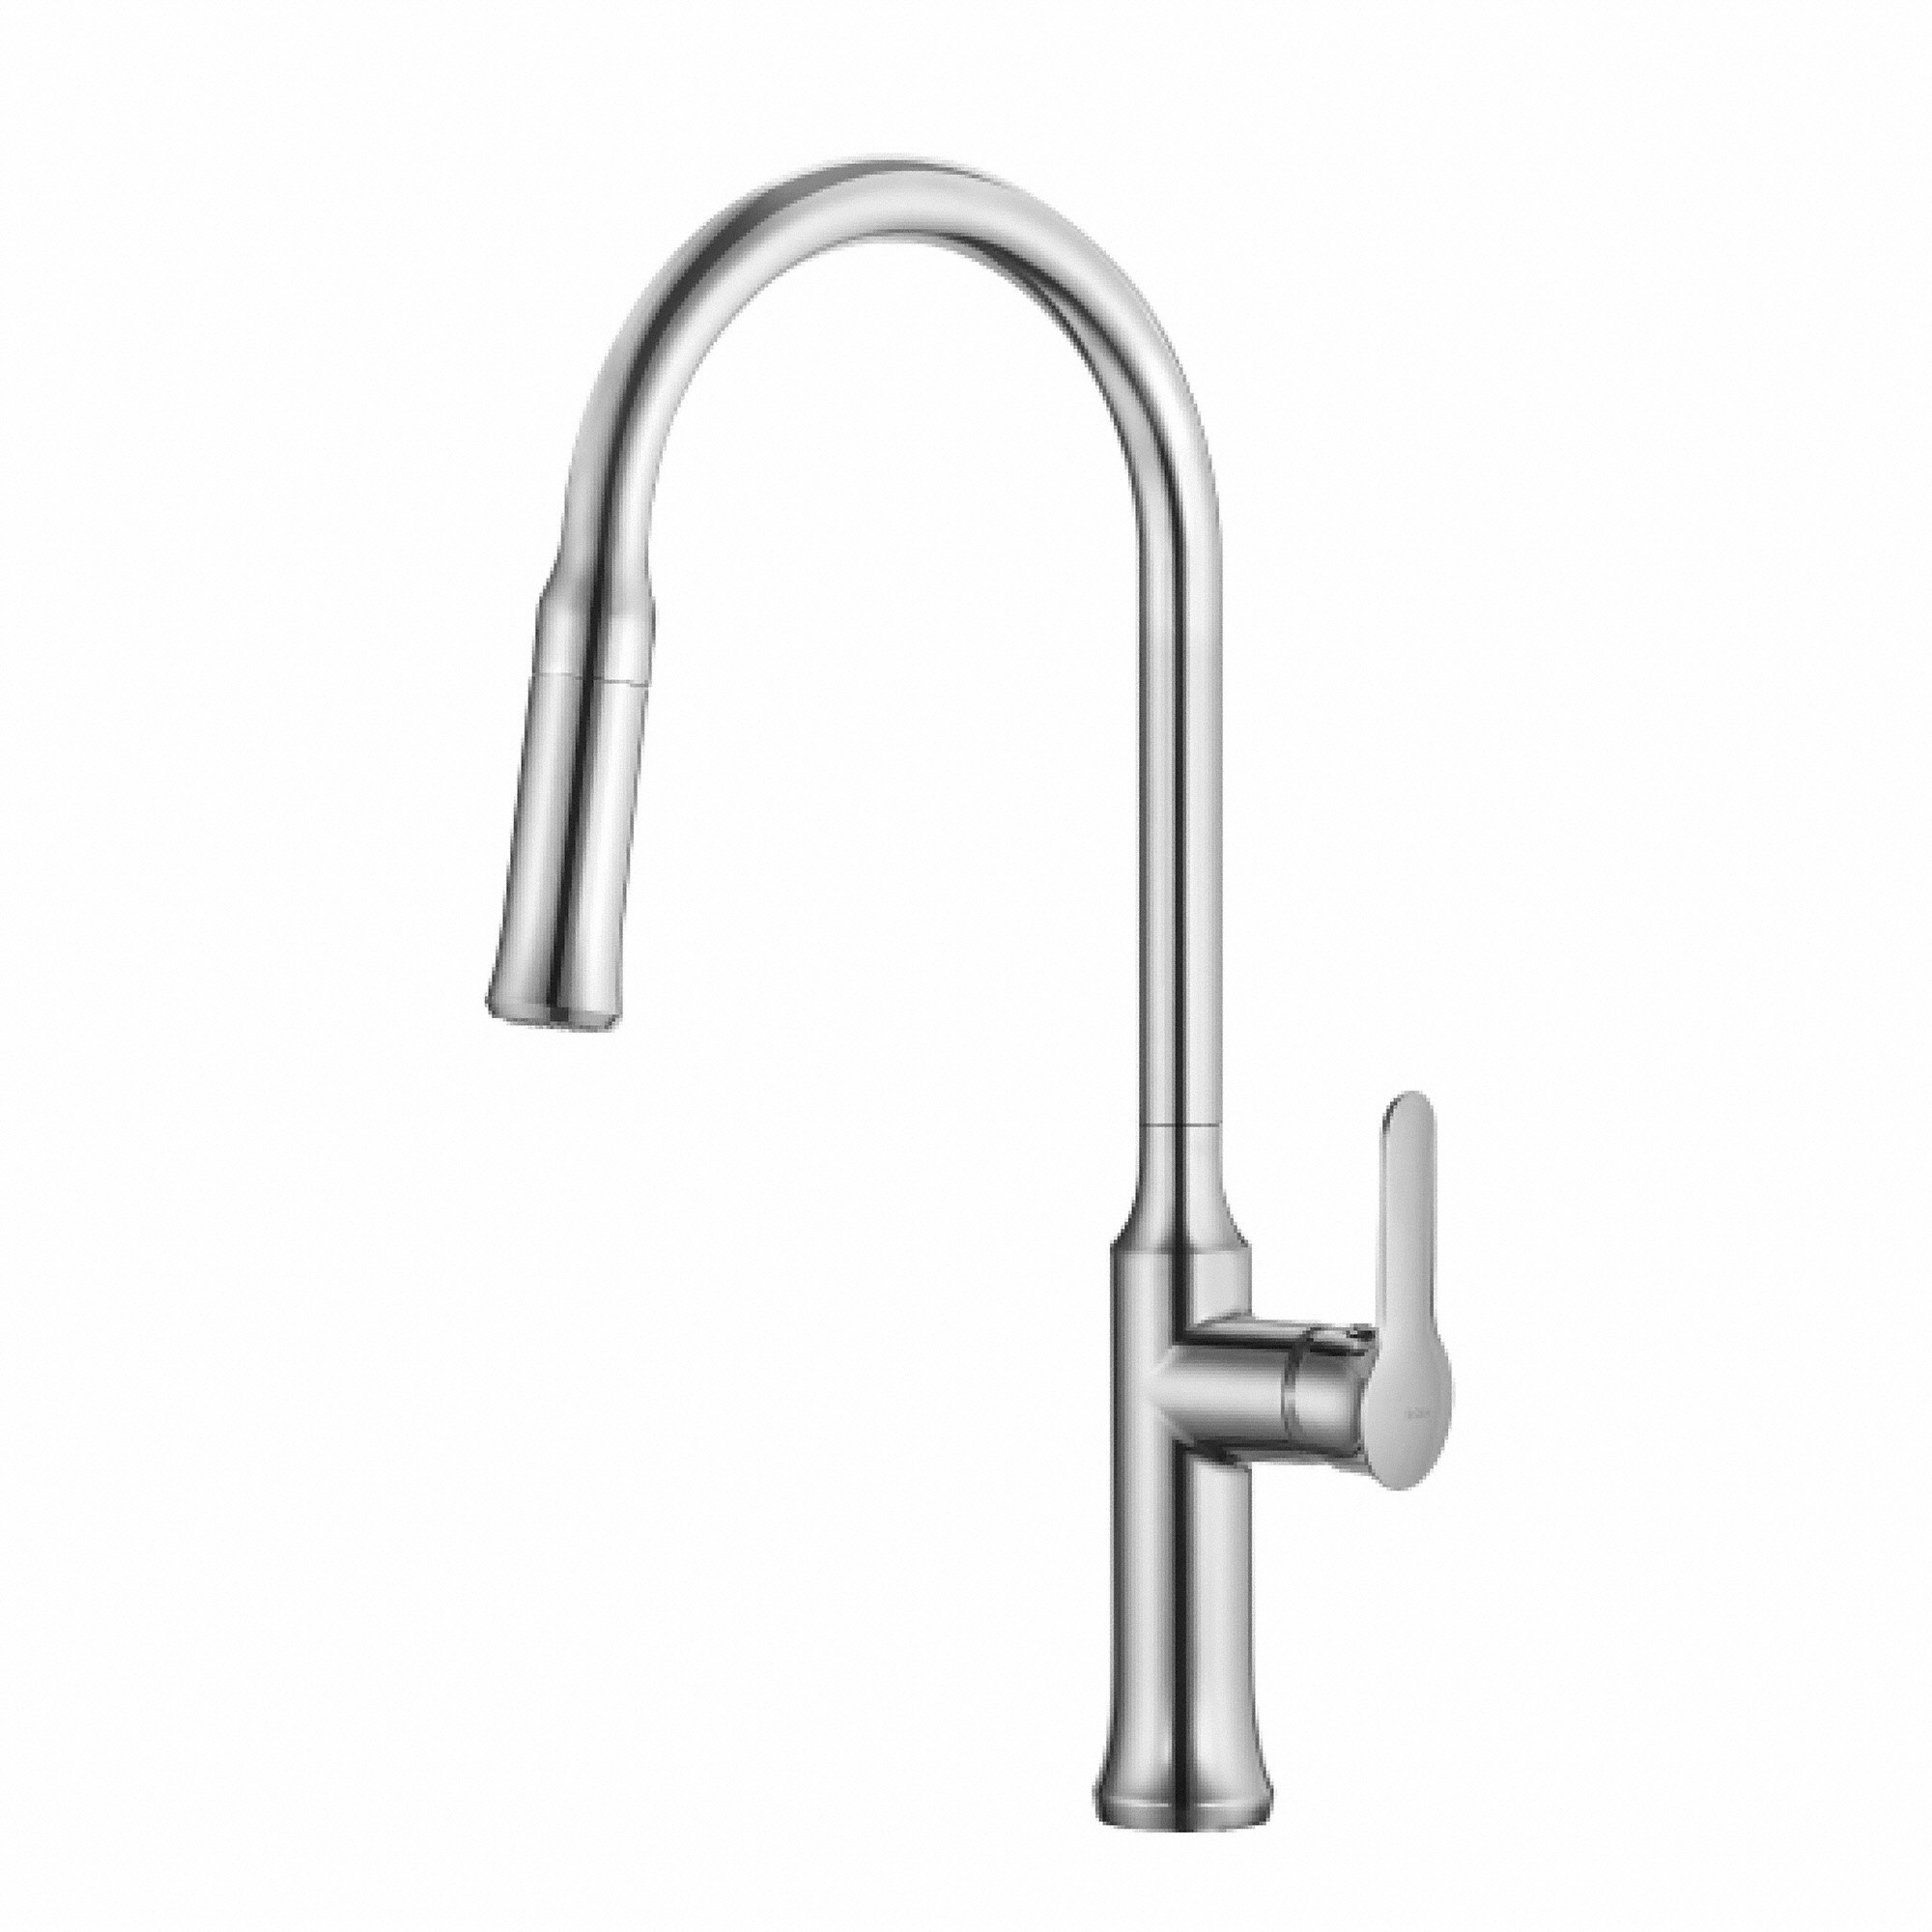 Ideas, kraus faucets any good kraus faucets any good kitchen faucet kraususa 2000 x 2000  .